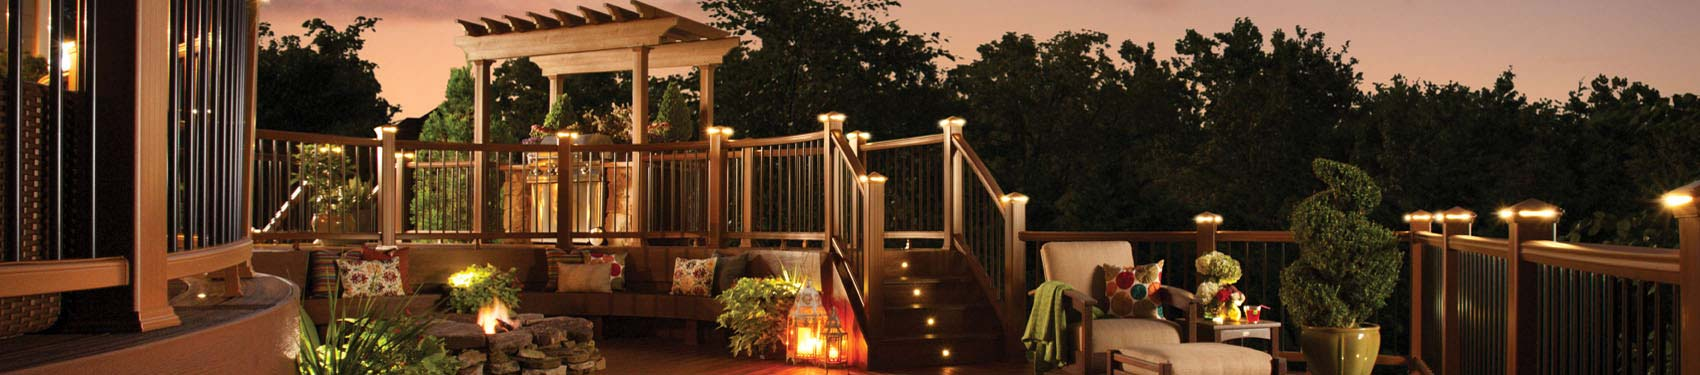 Outdoor living area featuring brown trex decking at sunset